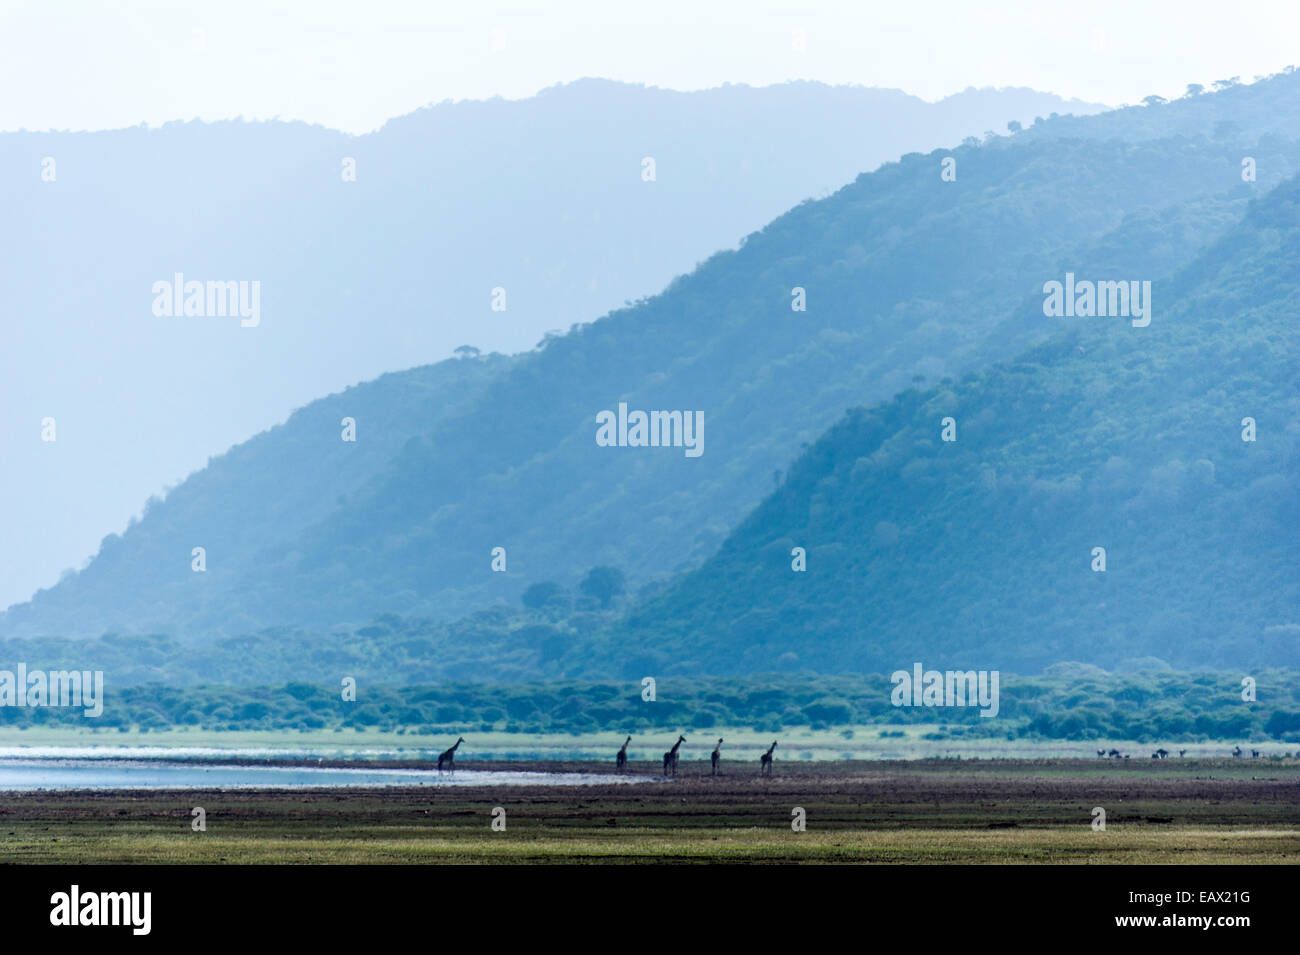 A herd of Giraffe walking along the shore of soda lake in a wide valley. Stock Photo